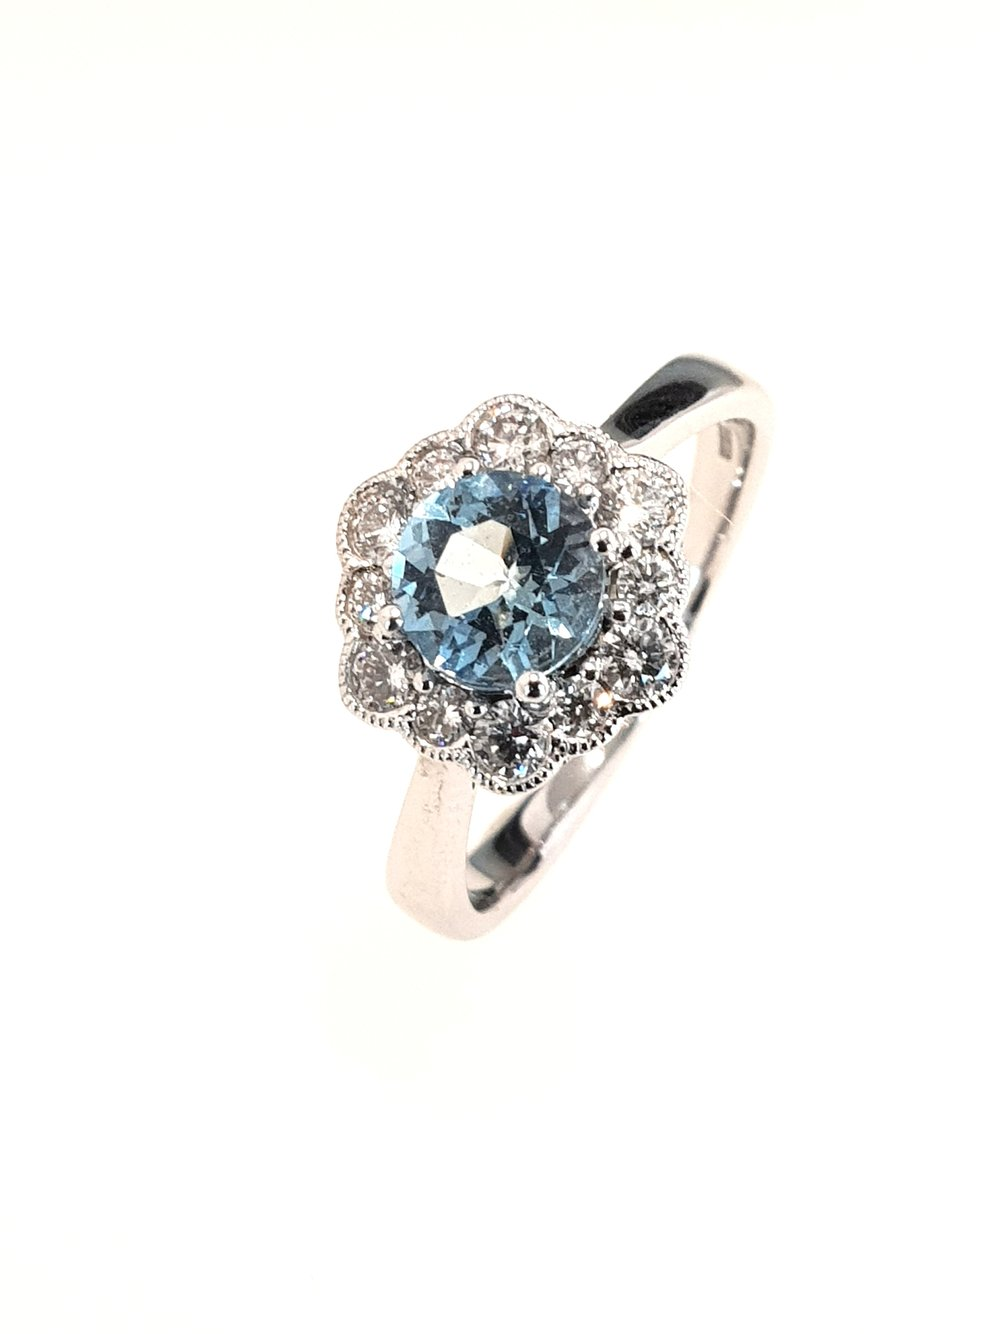 18ct White Gold Aquamarine(.67ct) & Diamond Ring  Diamond: .20ct, G, Si1  Stock Code: N8948  £1650